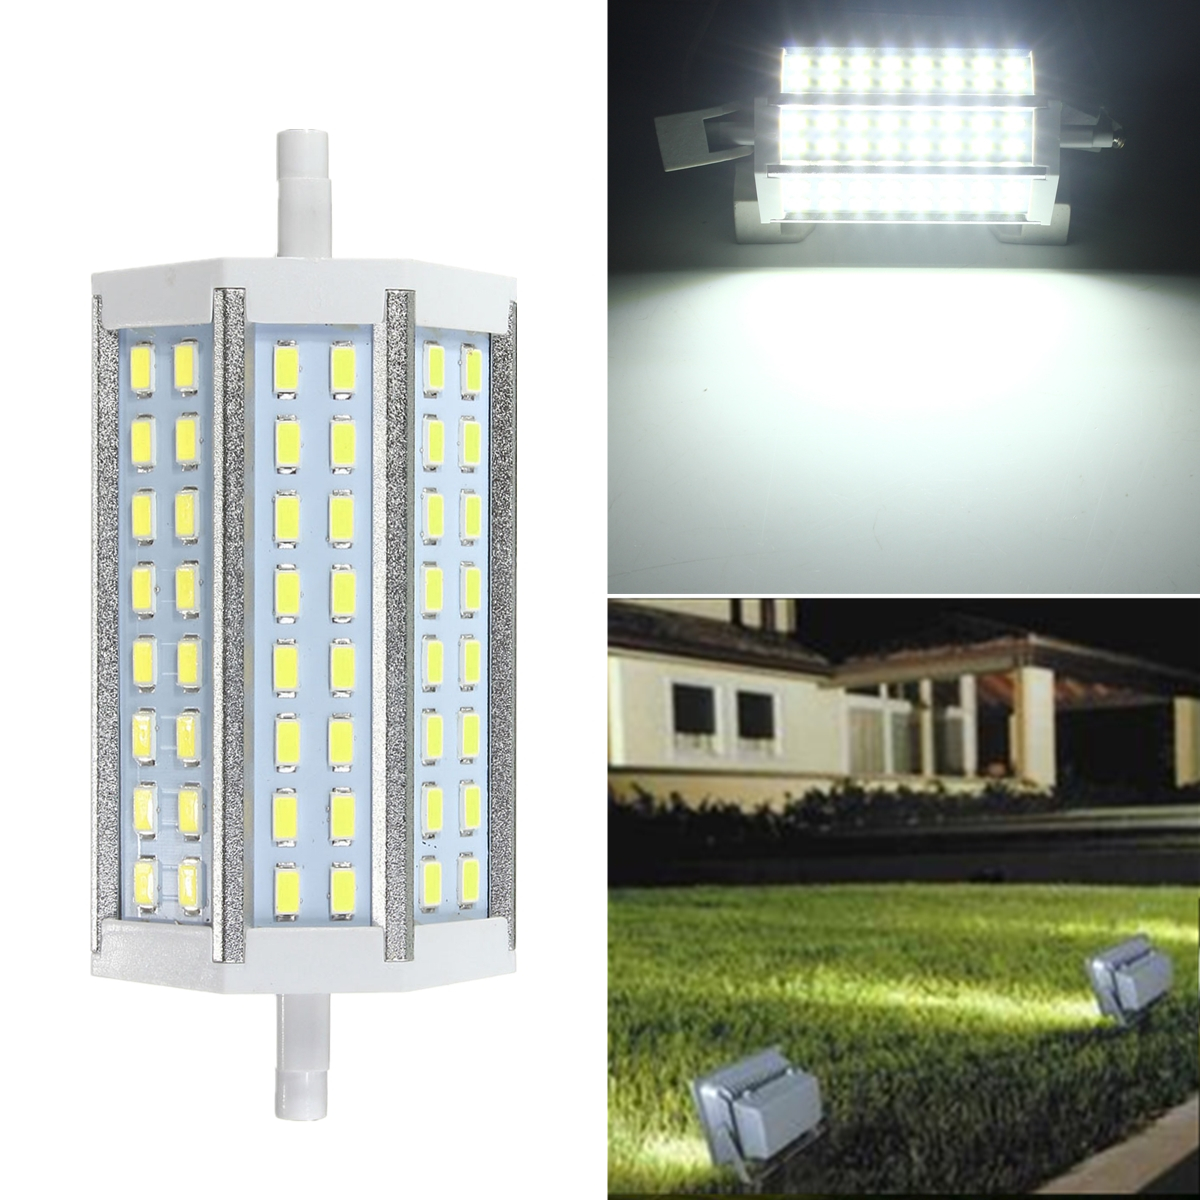 r7s 118mm 15w 48 smd 5730 led lampe strahler stab fluter leuchtmittel dimmbar ebay. Black Bedroom Furniture Sets. Home Design Ideas